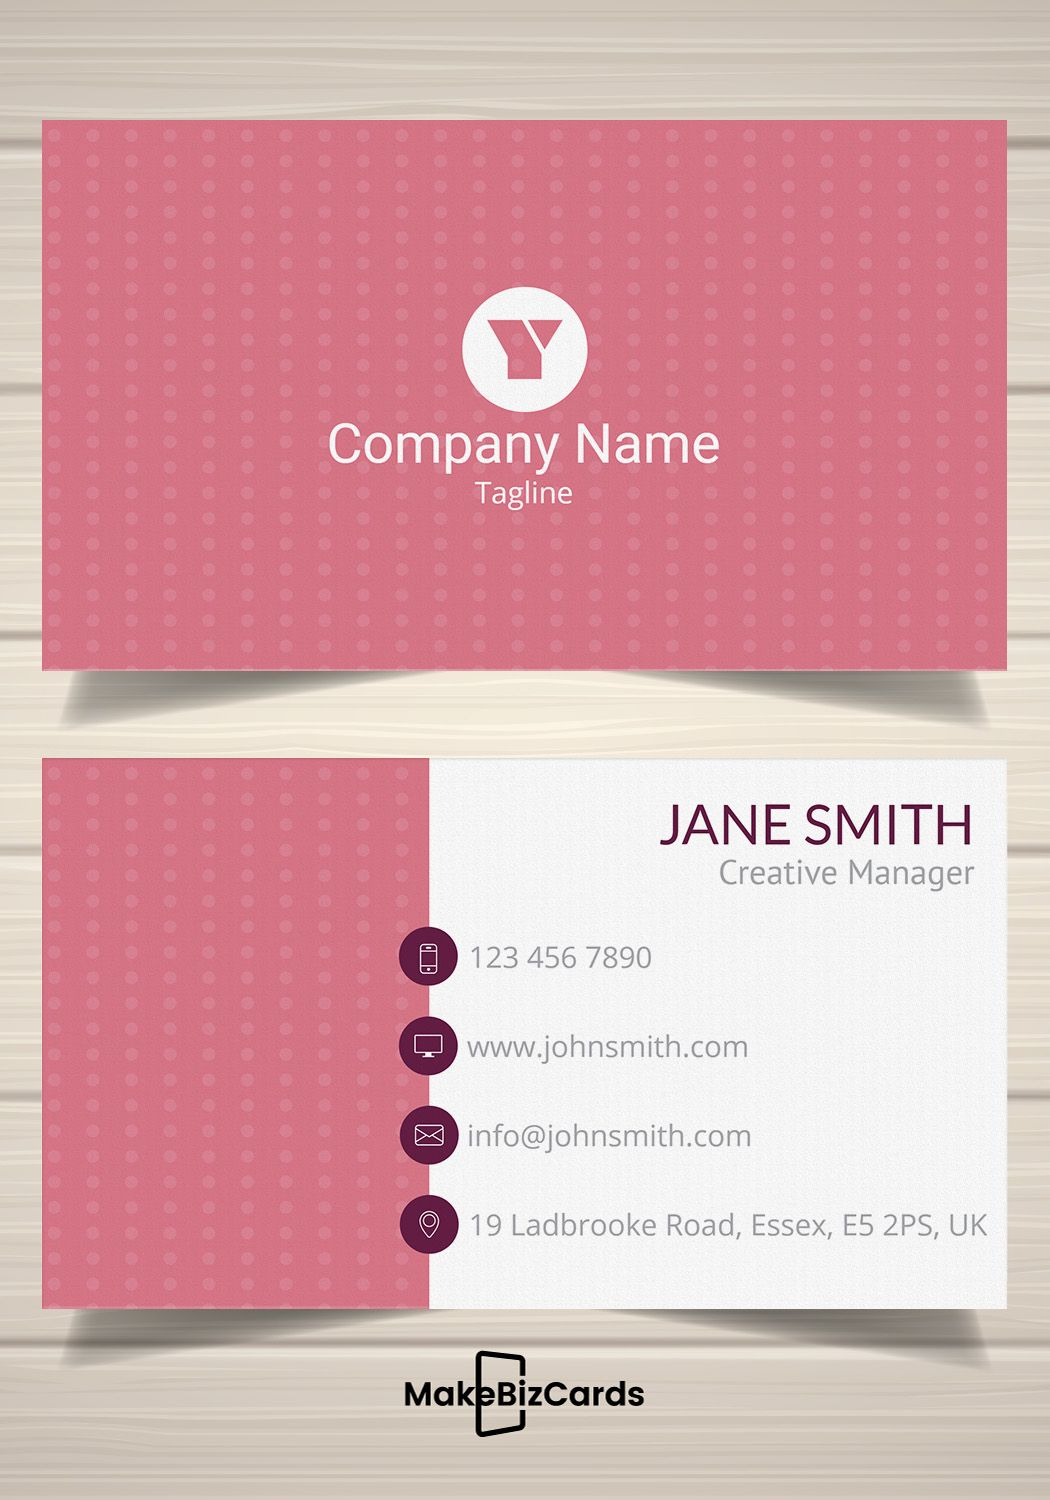 Free Pink Polka Dot Business Card Template Businesscard Card Template Printing Business Cards Business Card Template